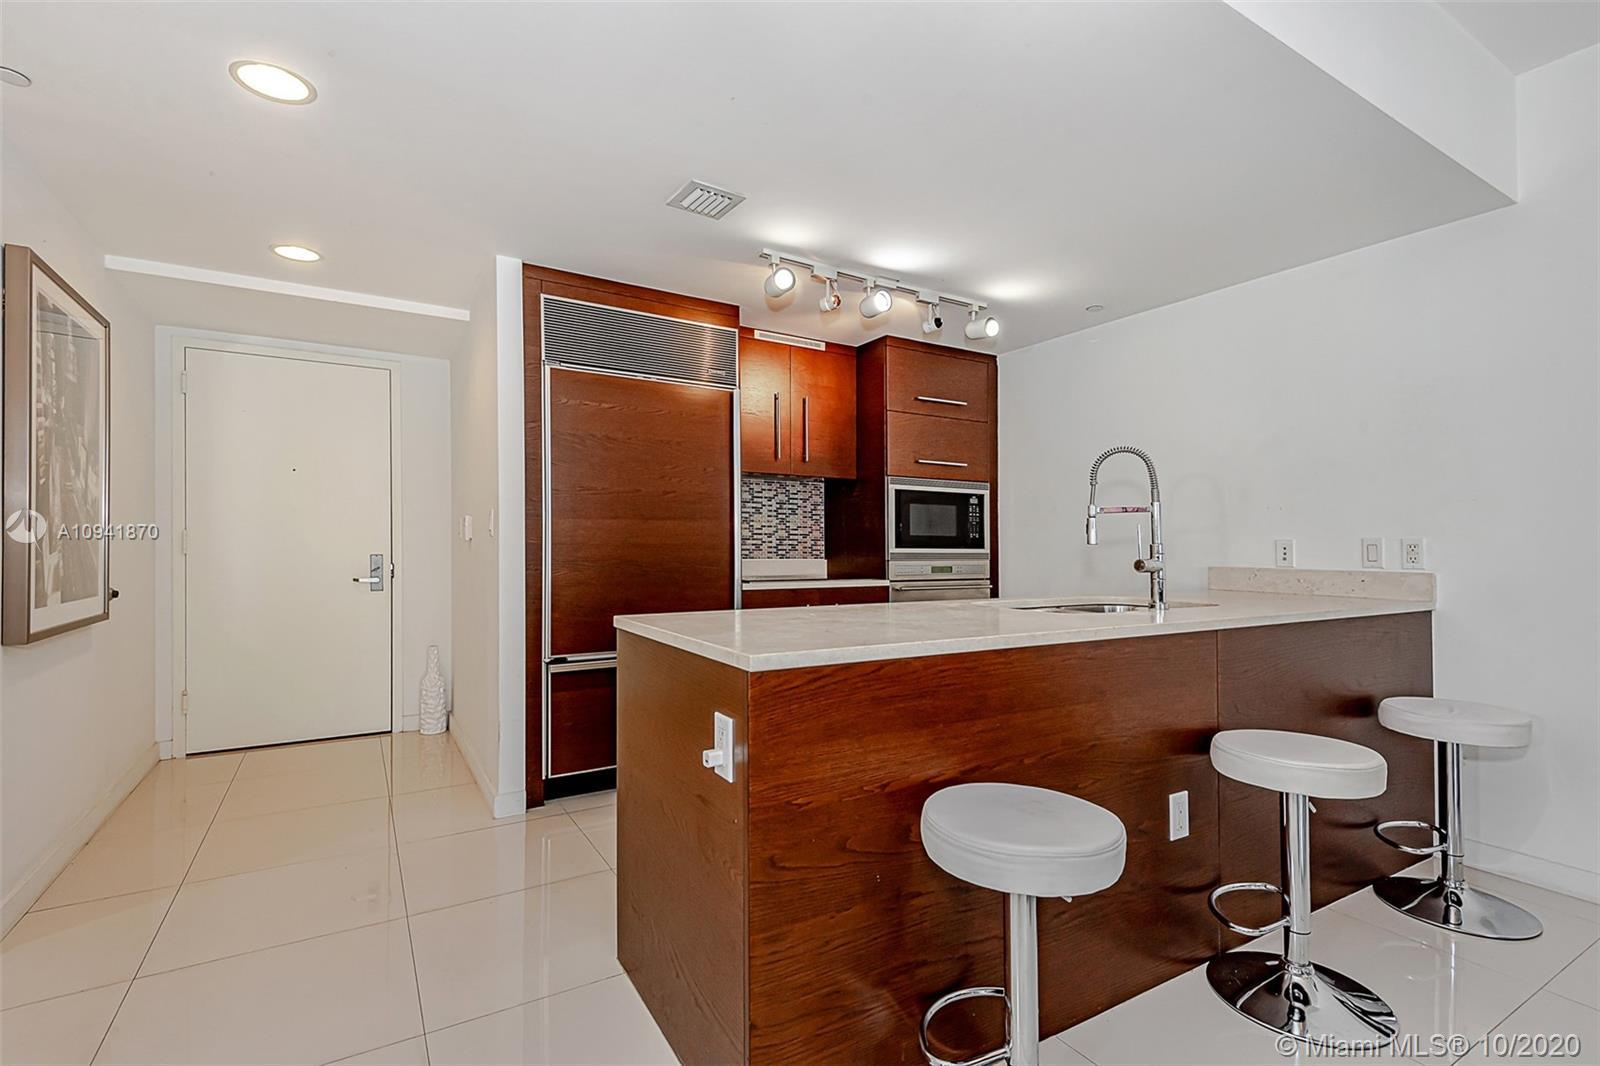 AMAZING UNOBSTRUCTED WATER AND CITY VIEWS LOOKING DIRECTLY AT THE MOUTH OF THE MIAMI RIVER. 1 BED/1